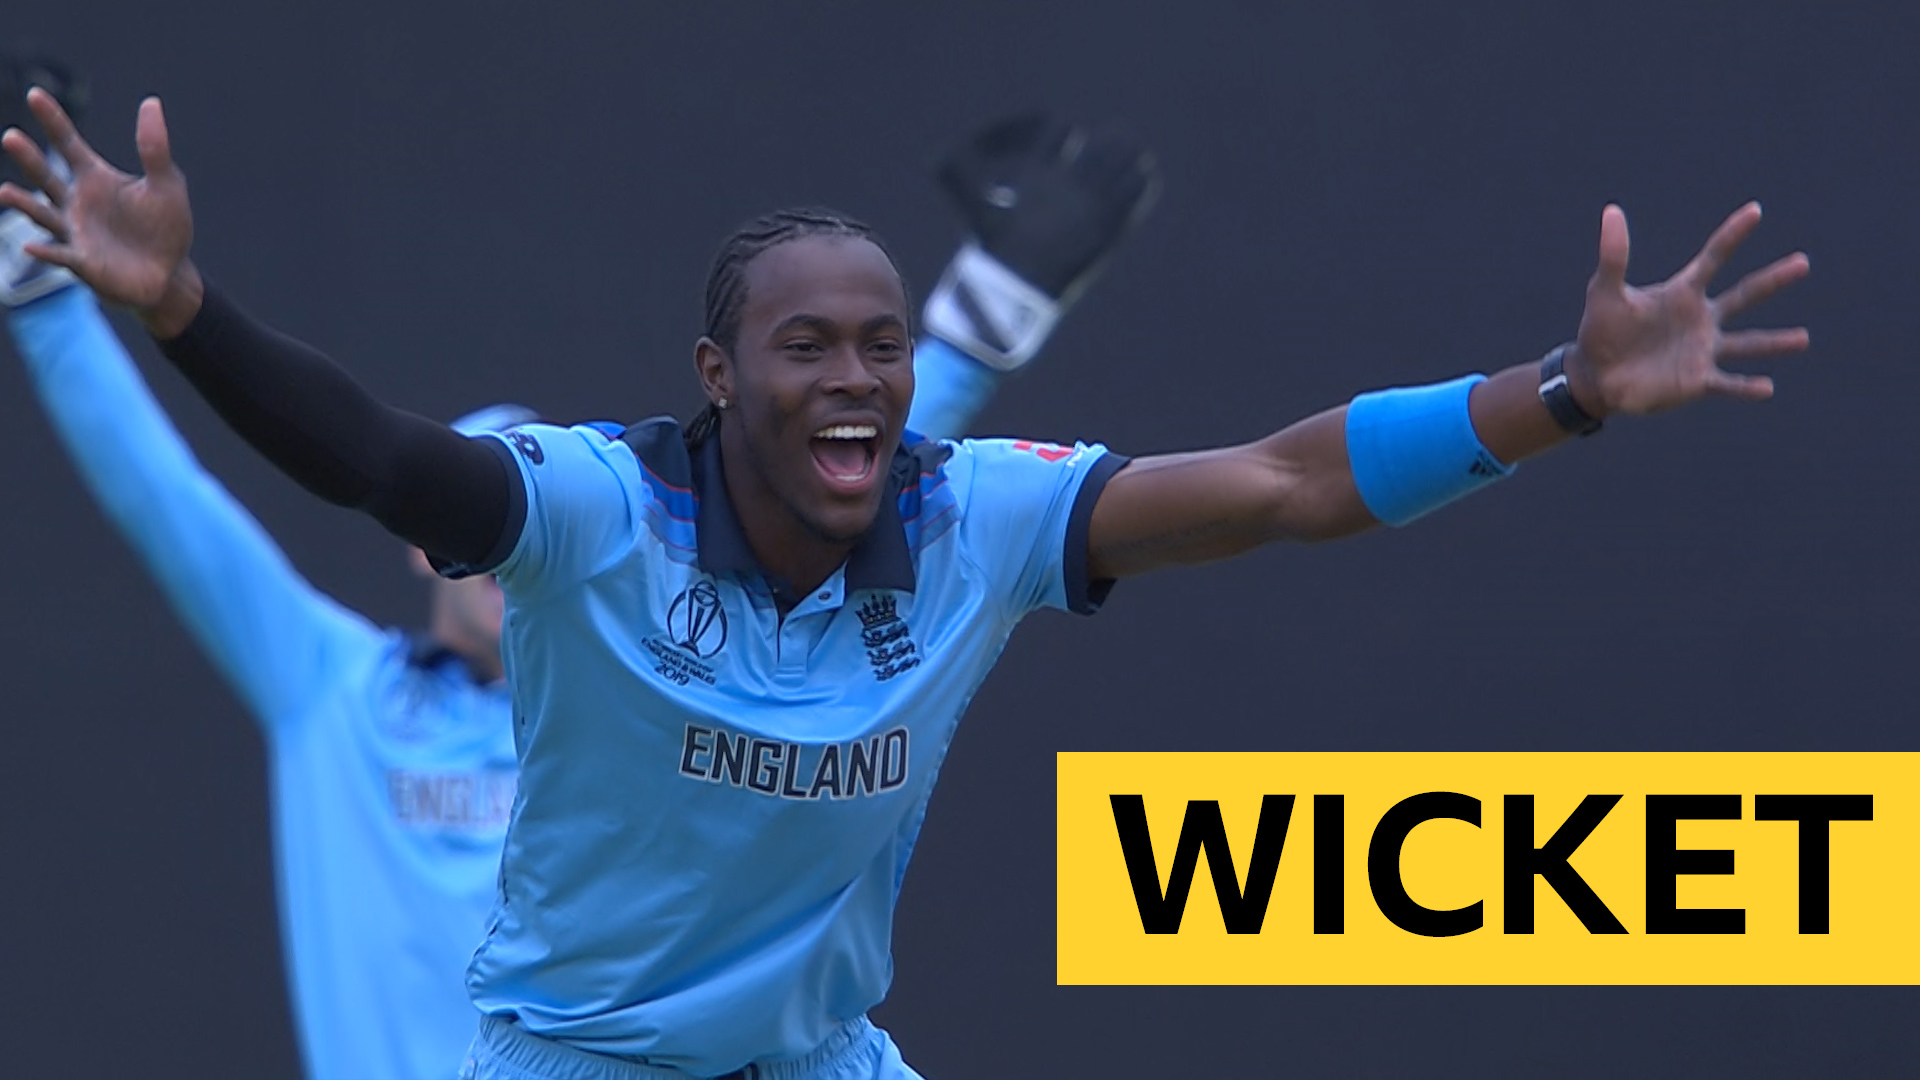 Cricket World Cup: England's Jofra Archer takes two wickets in two balls v West Indies